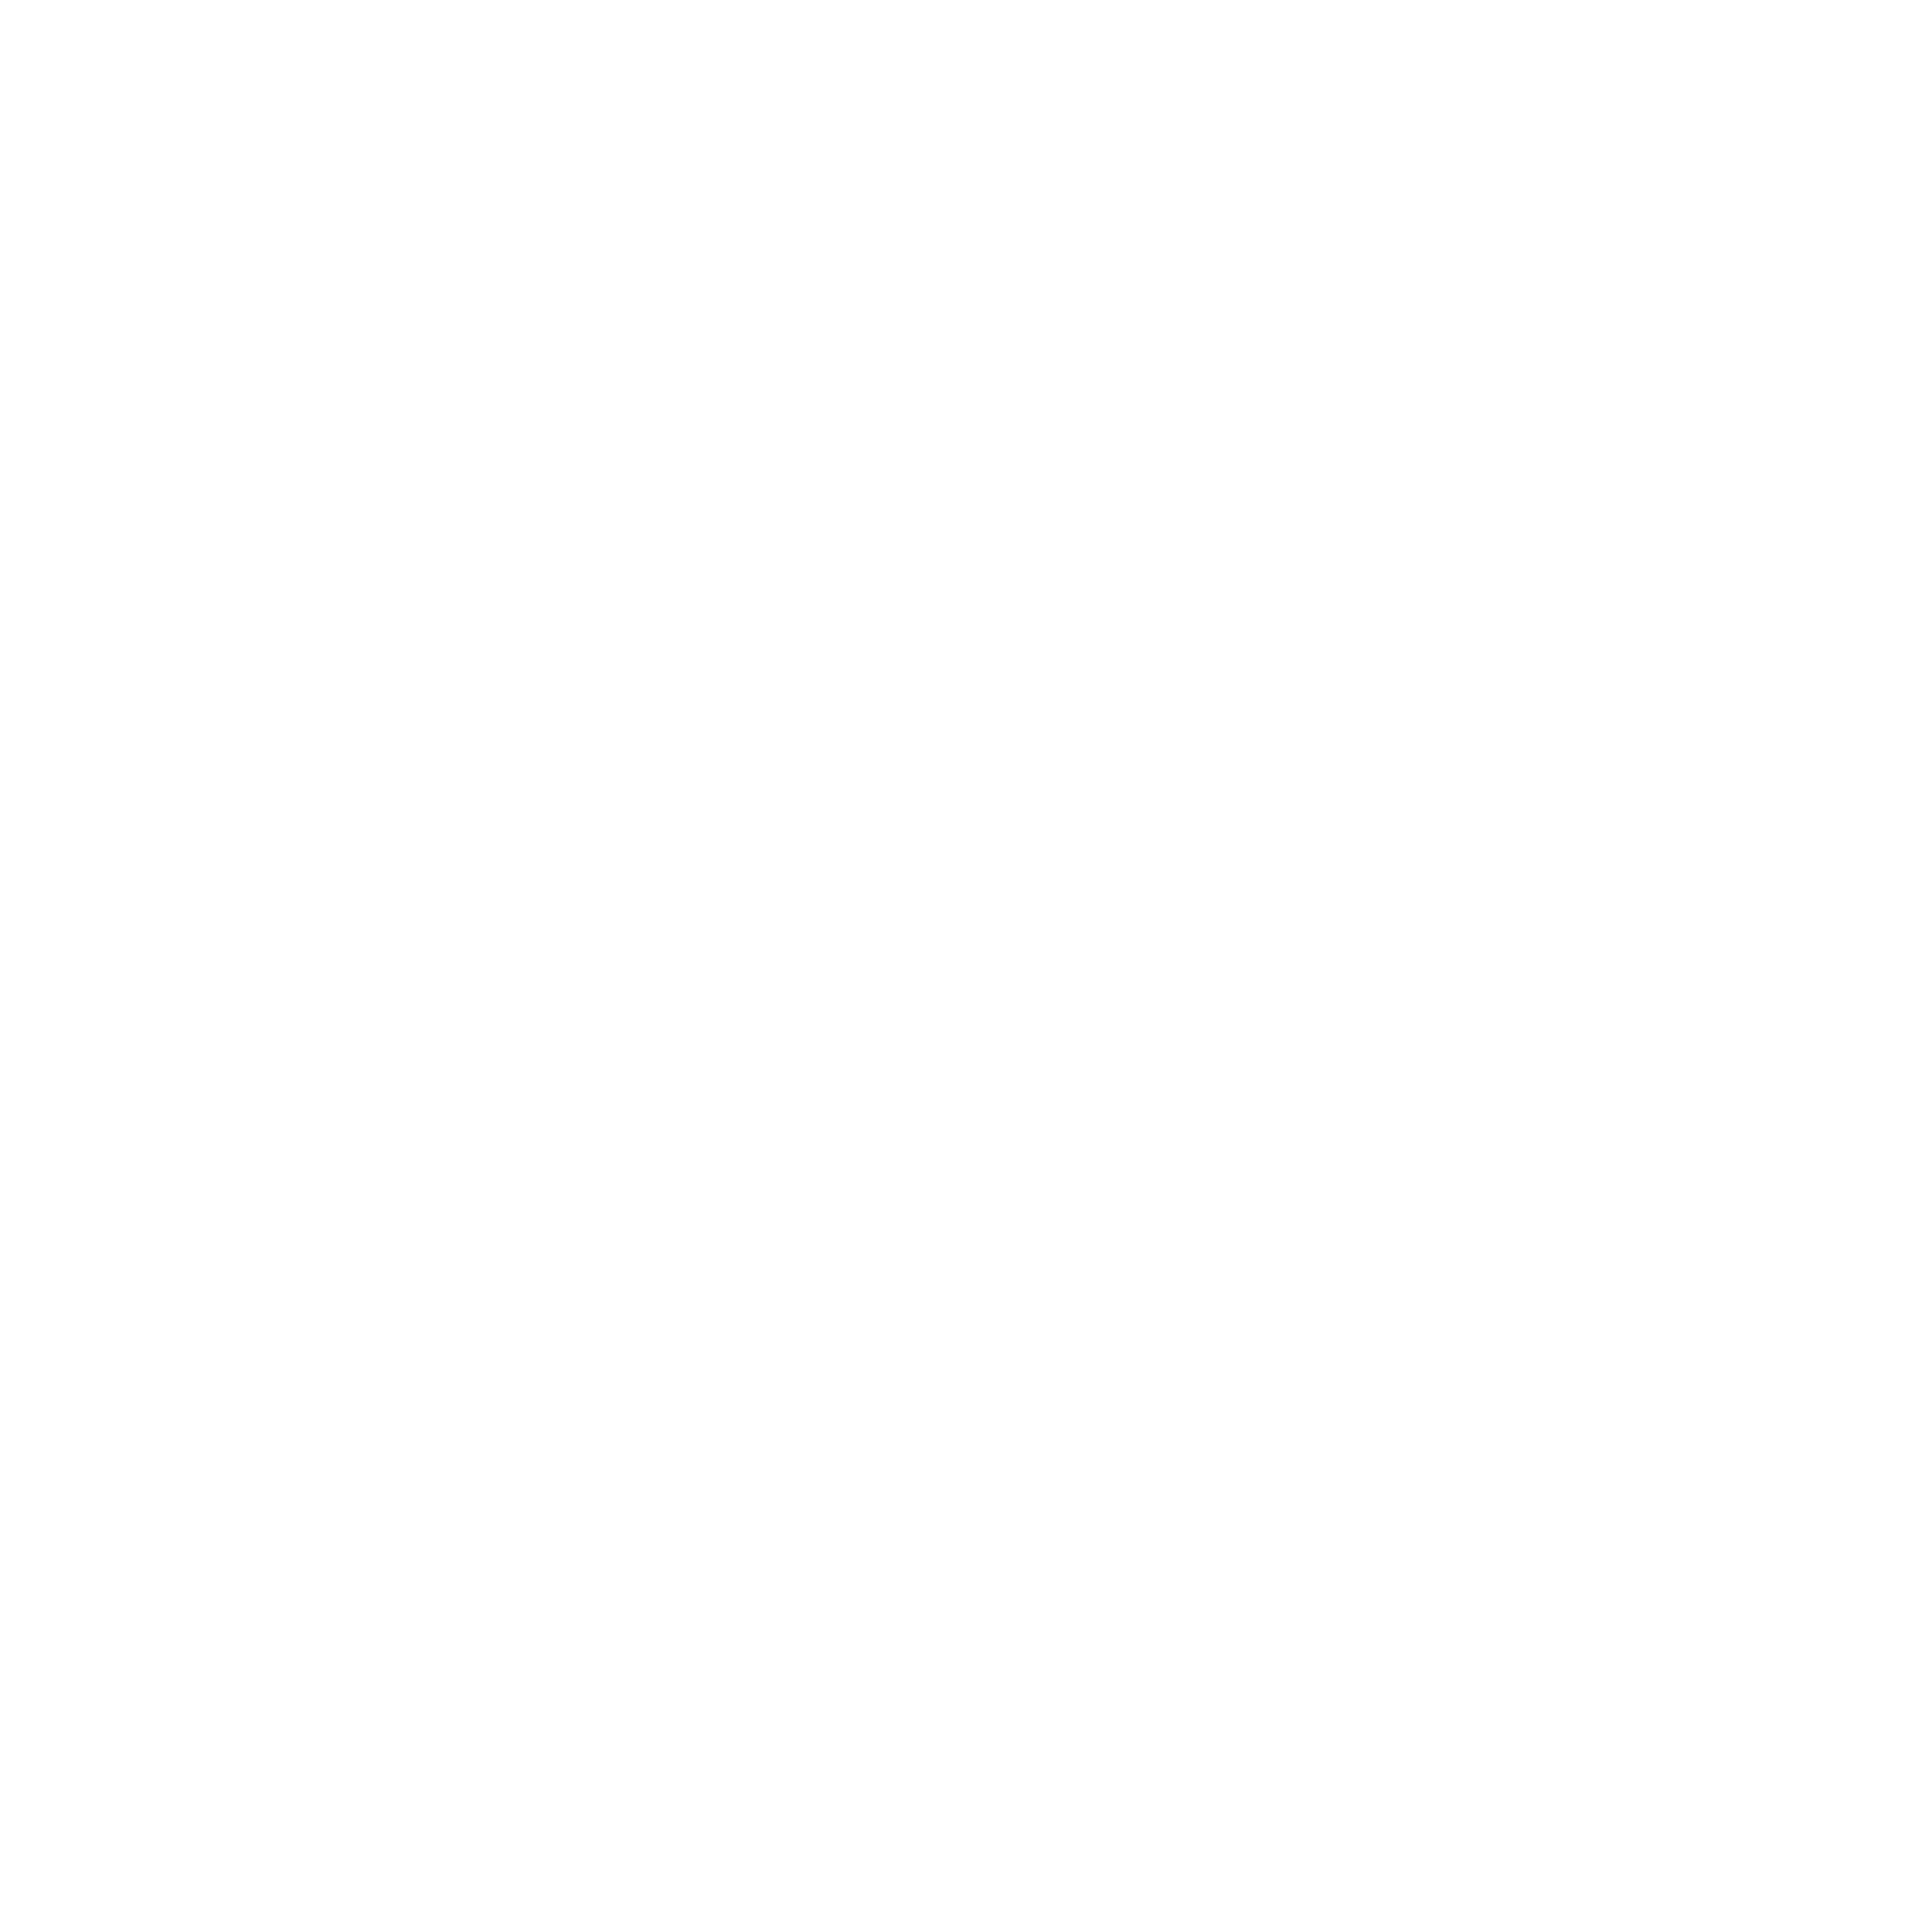 4096x4096 - Bootstrap Logo Vector PNG